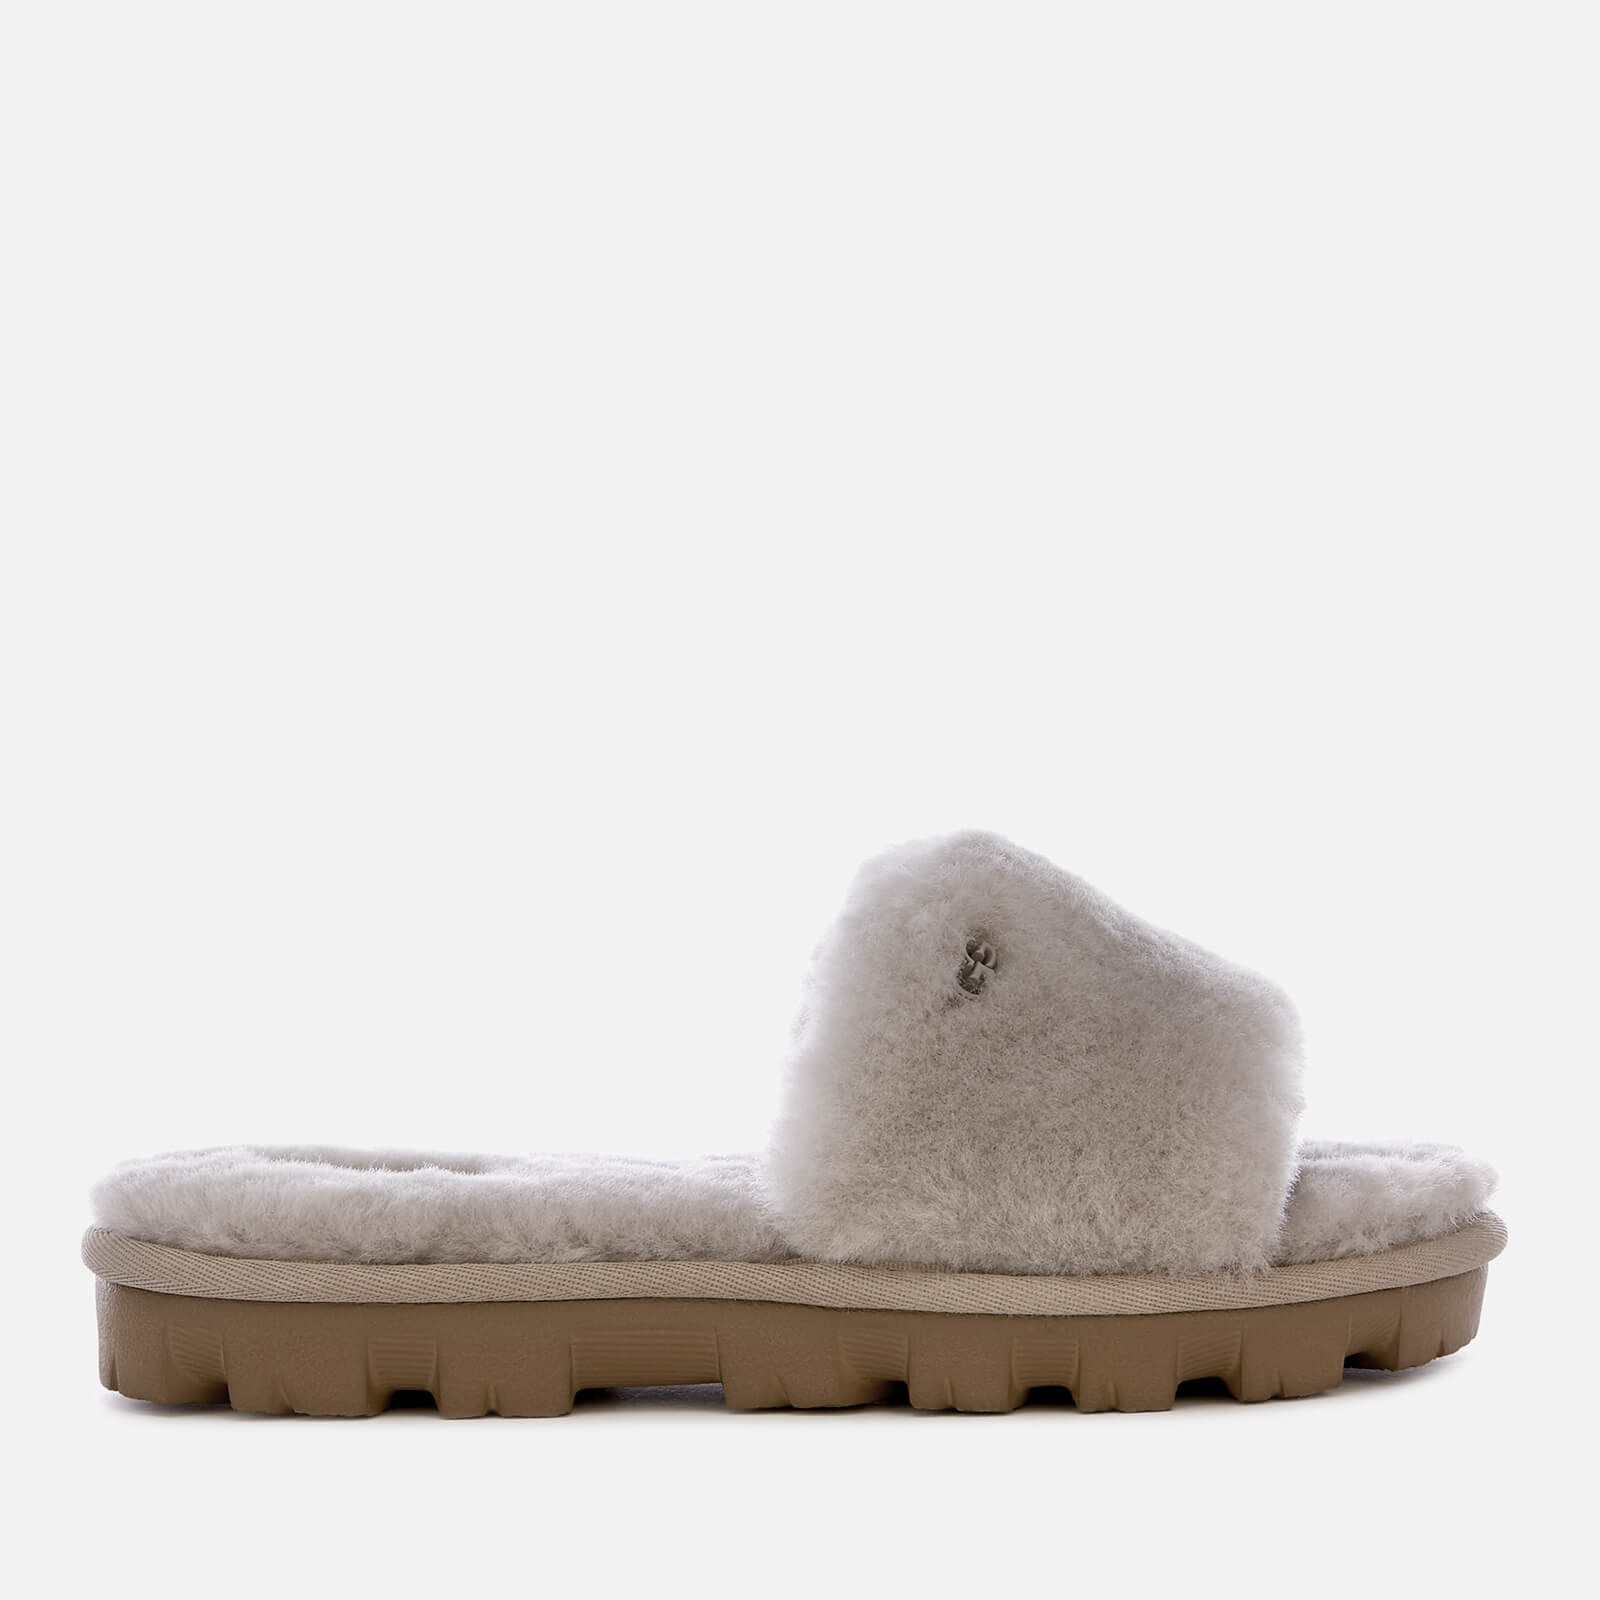 79dd1a5bf0e UGG Women s Cozette Slide Slippers - Oyster Clothing